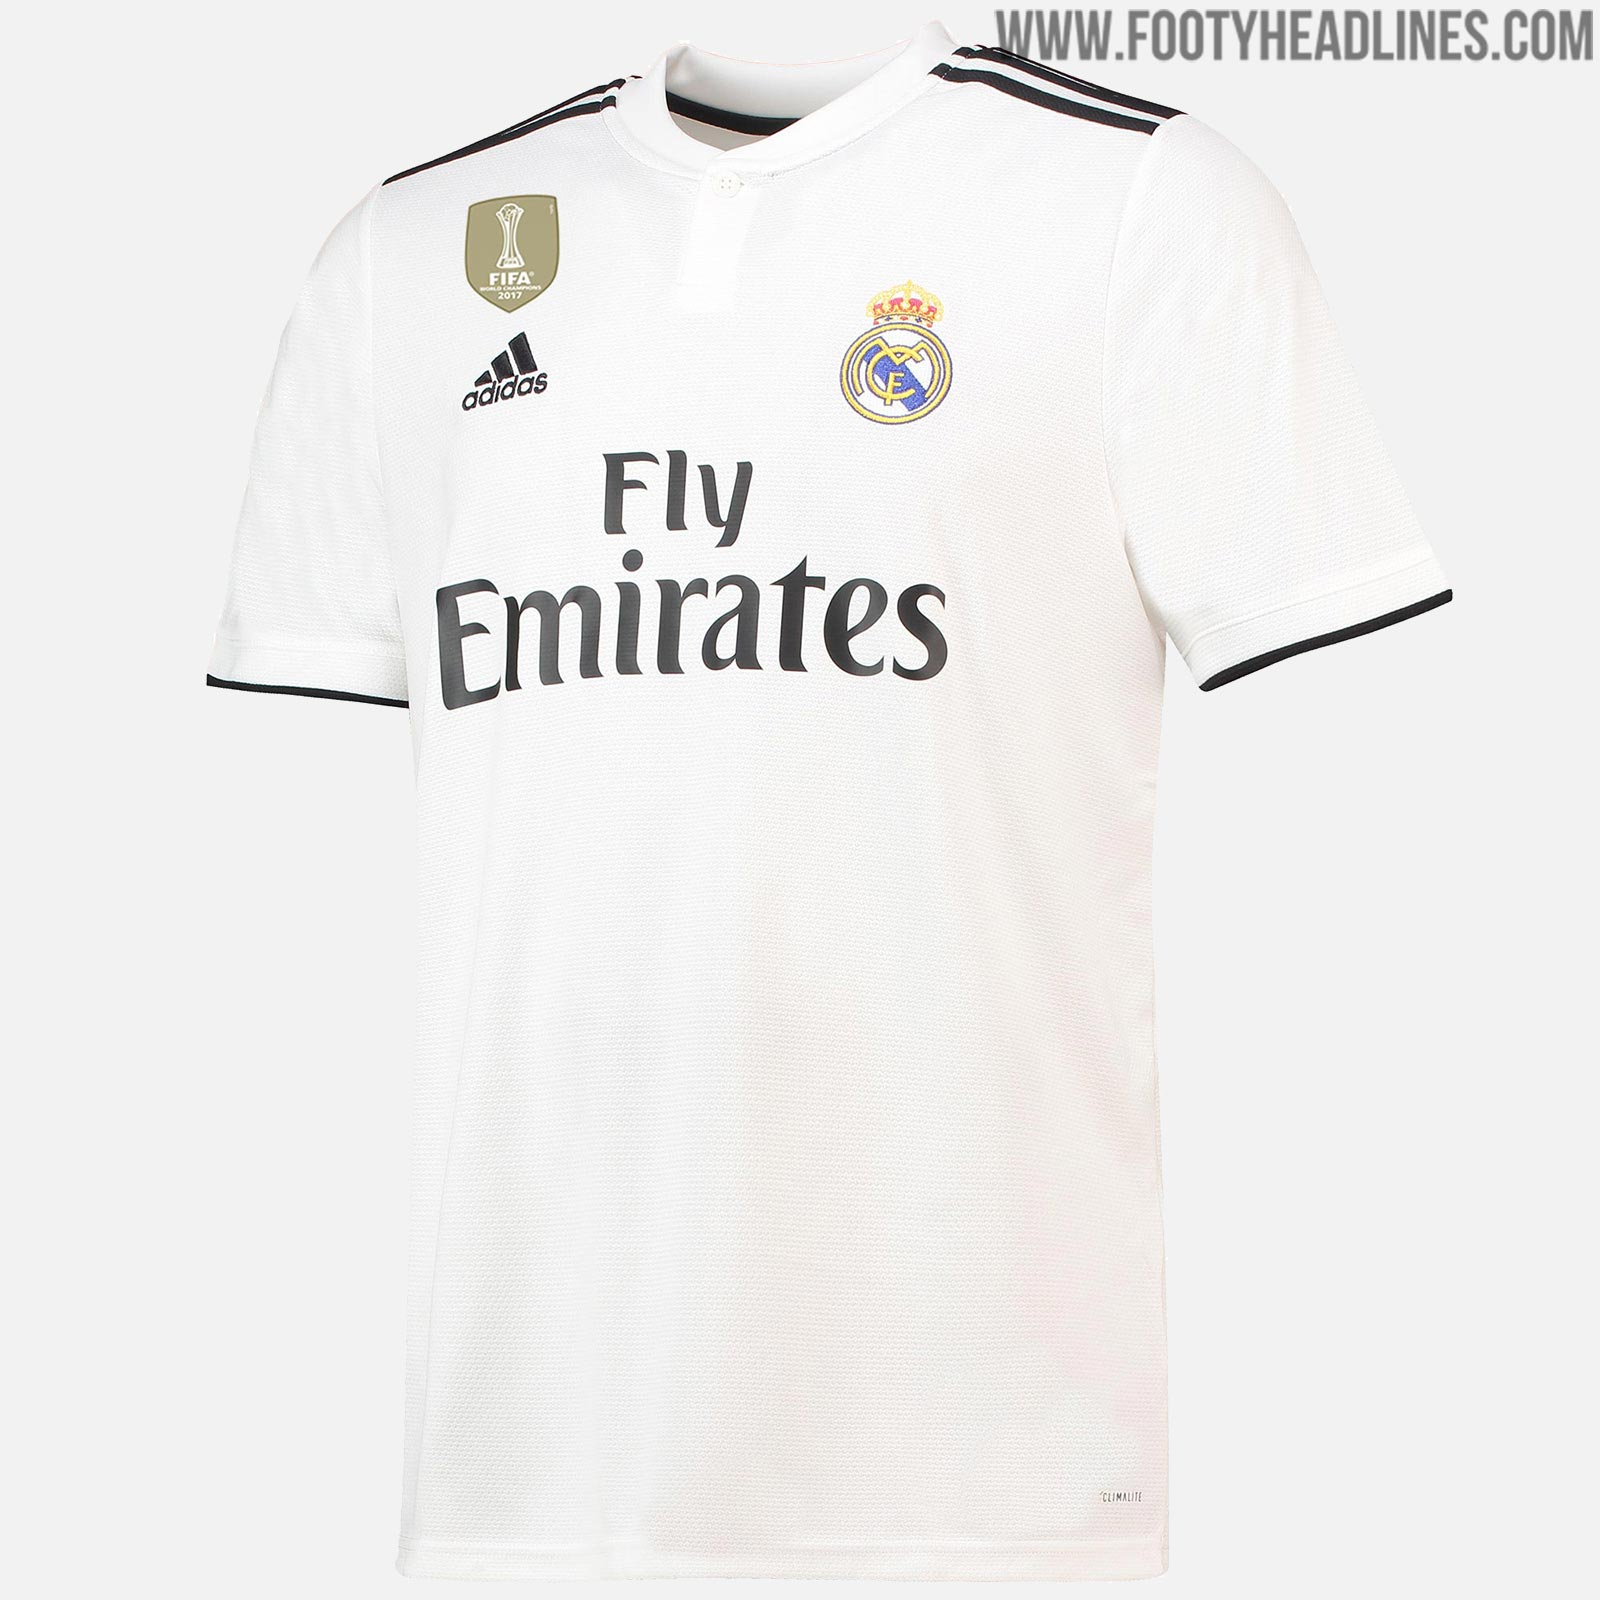 new products e6cb9 bbdf2 Is Nike Not Allowed To Sale France 2-Star Jersey With World ...